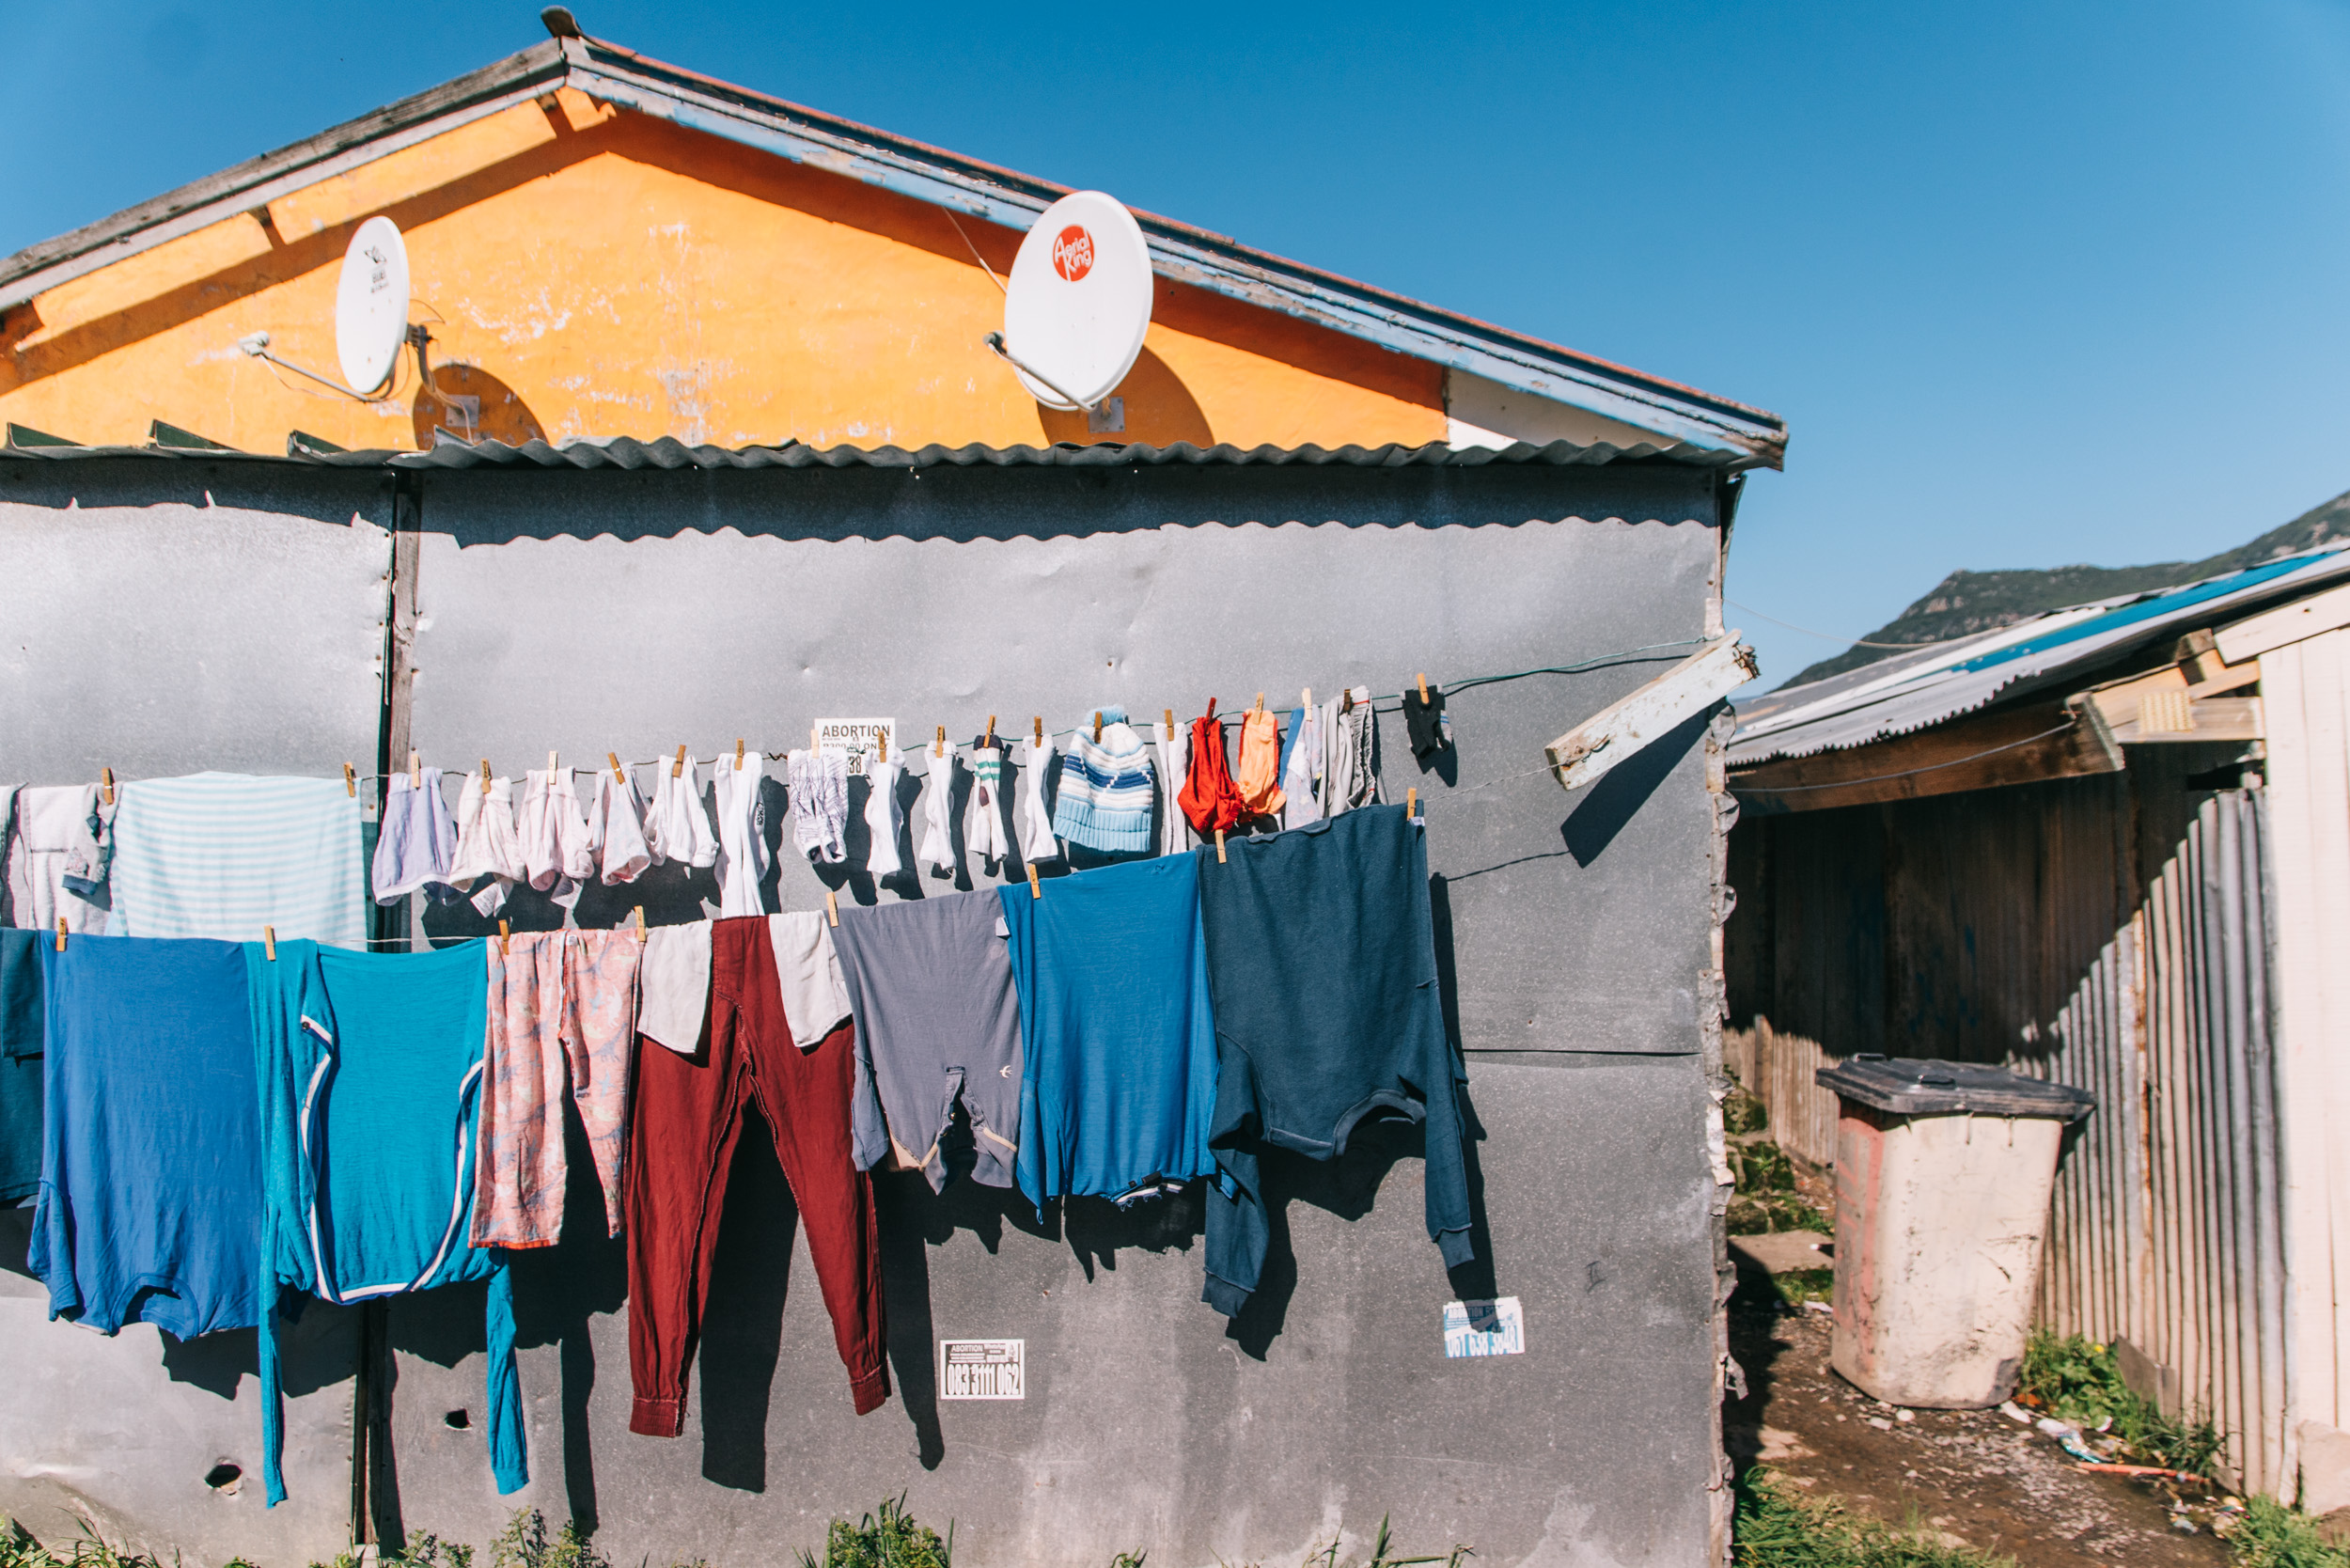 Washing hangs on the streets of Imizamo Yethu, Cape Town